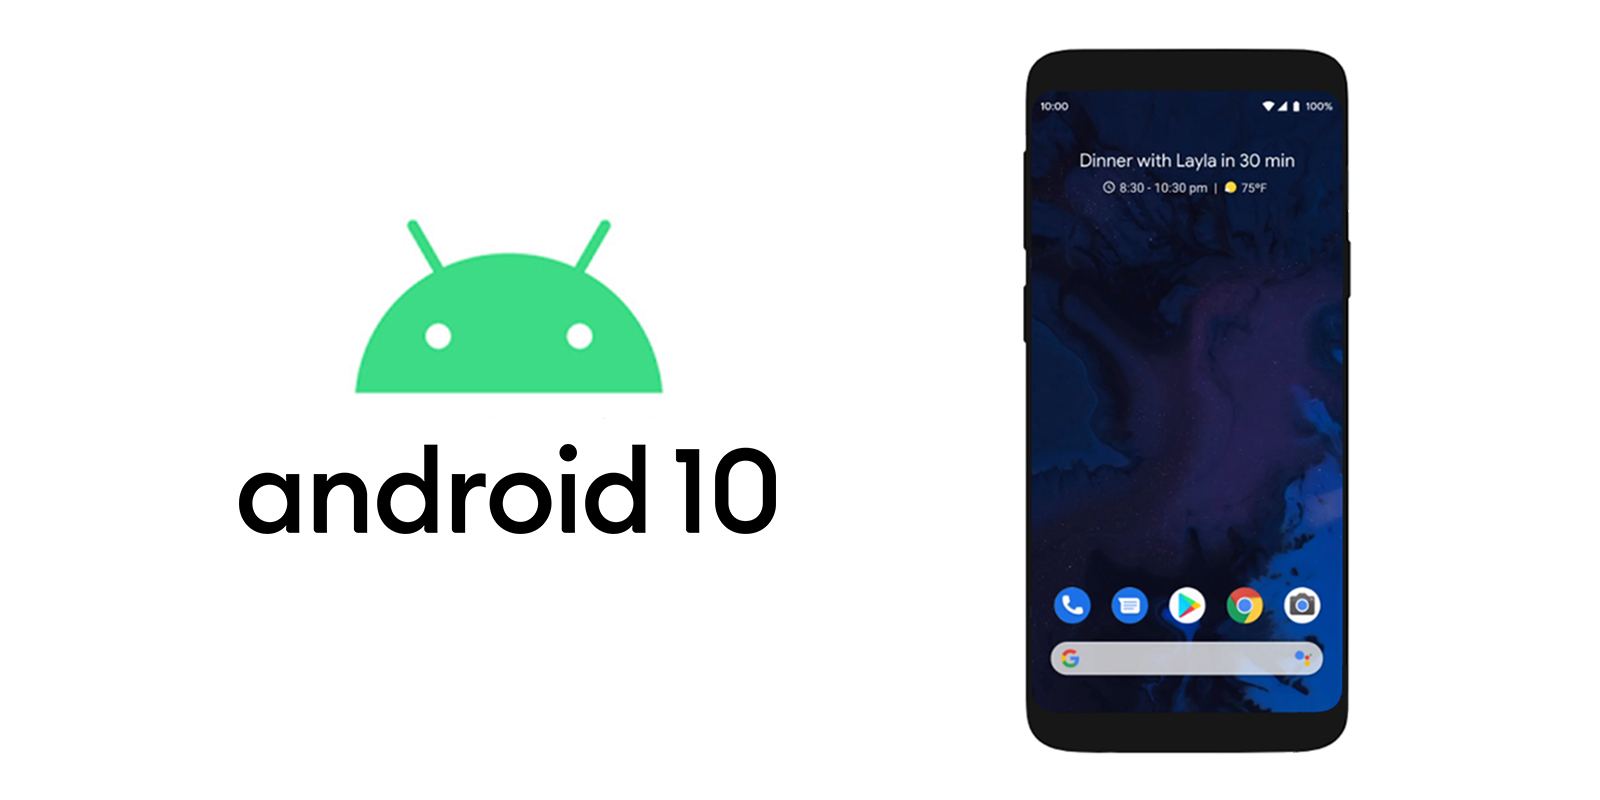 What is the latest Android version